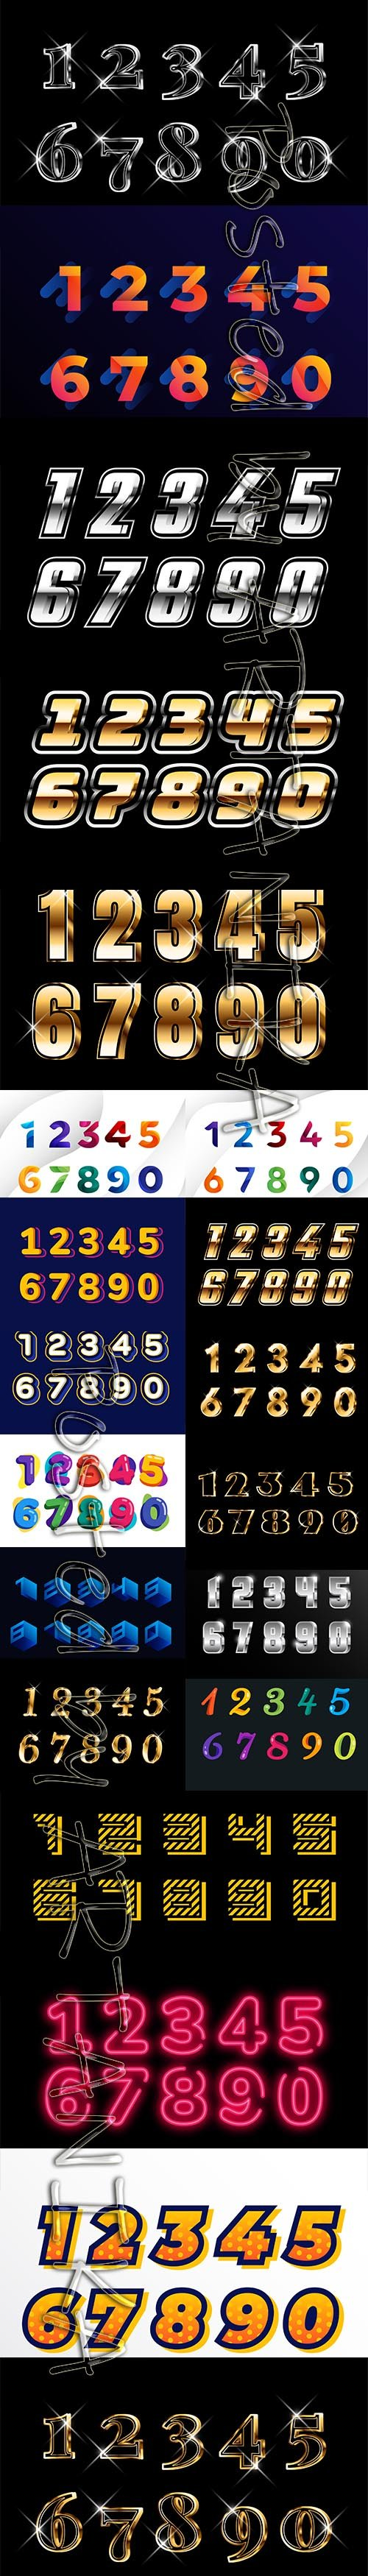 Collection of Luxury, Modern and Playful Gold and Silver Numbers